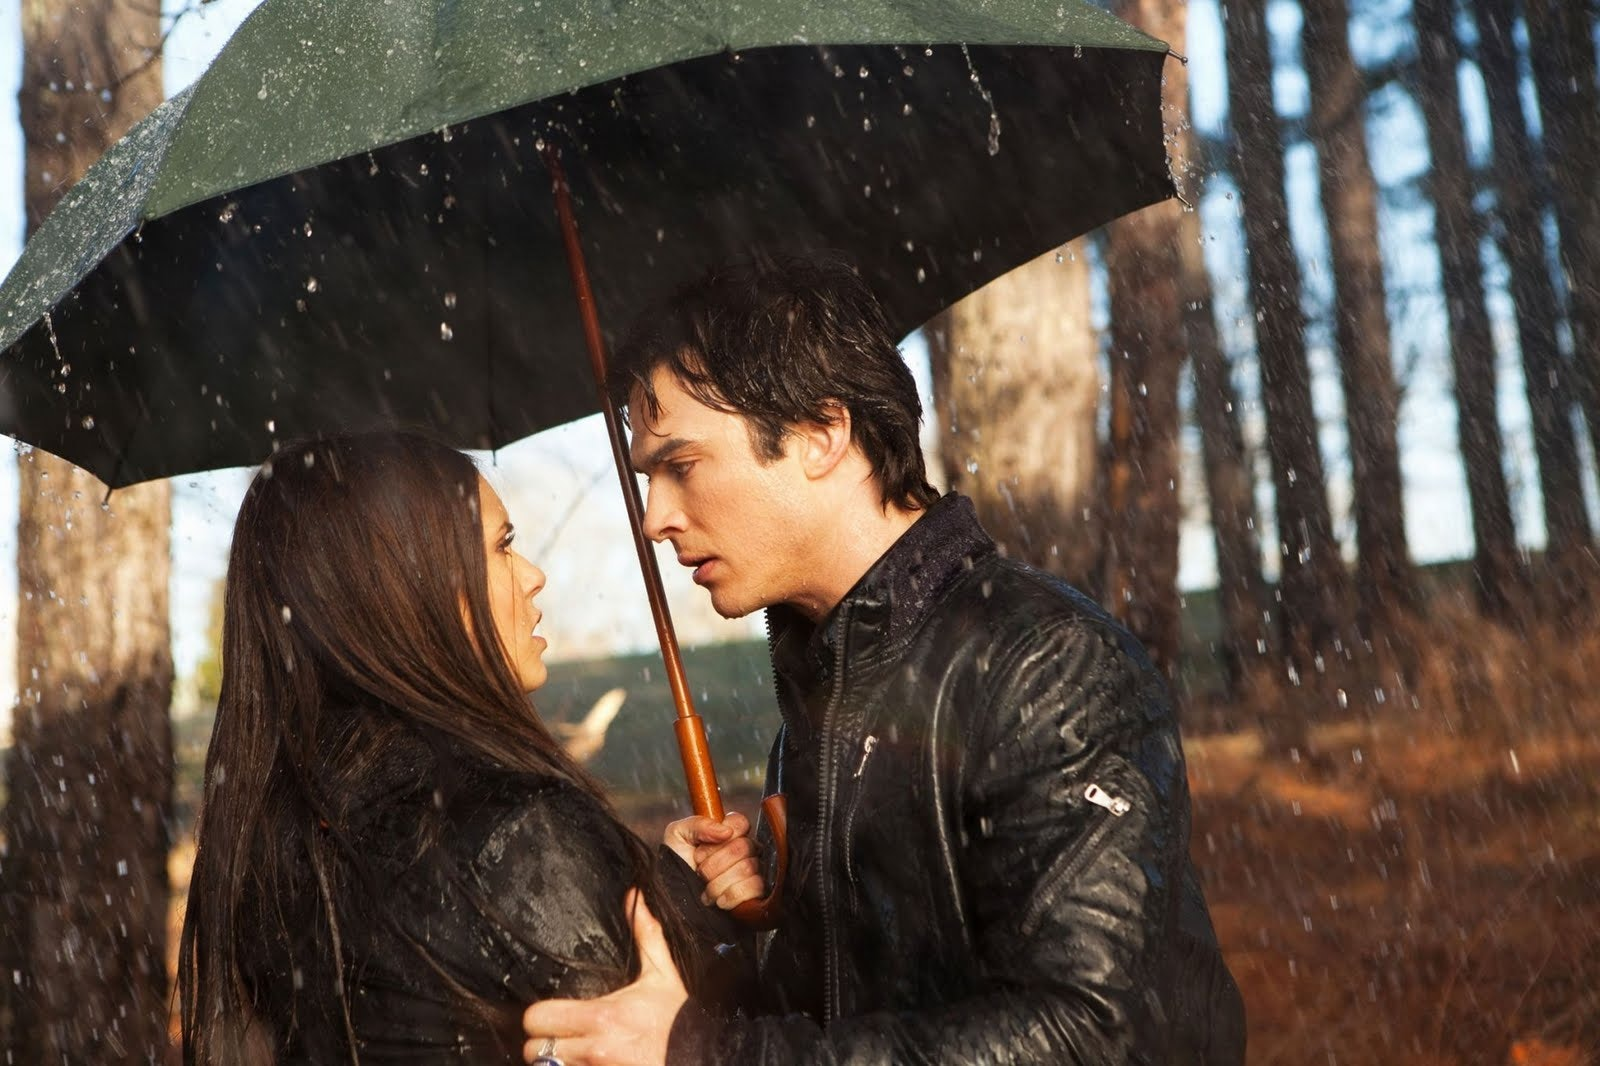 However, if/when it does, I can only hope that these TVD characters remain strictly in the friend zone.